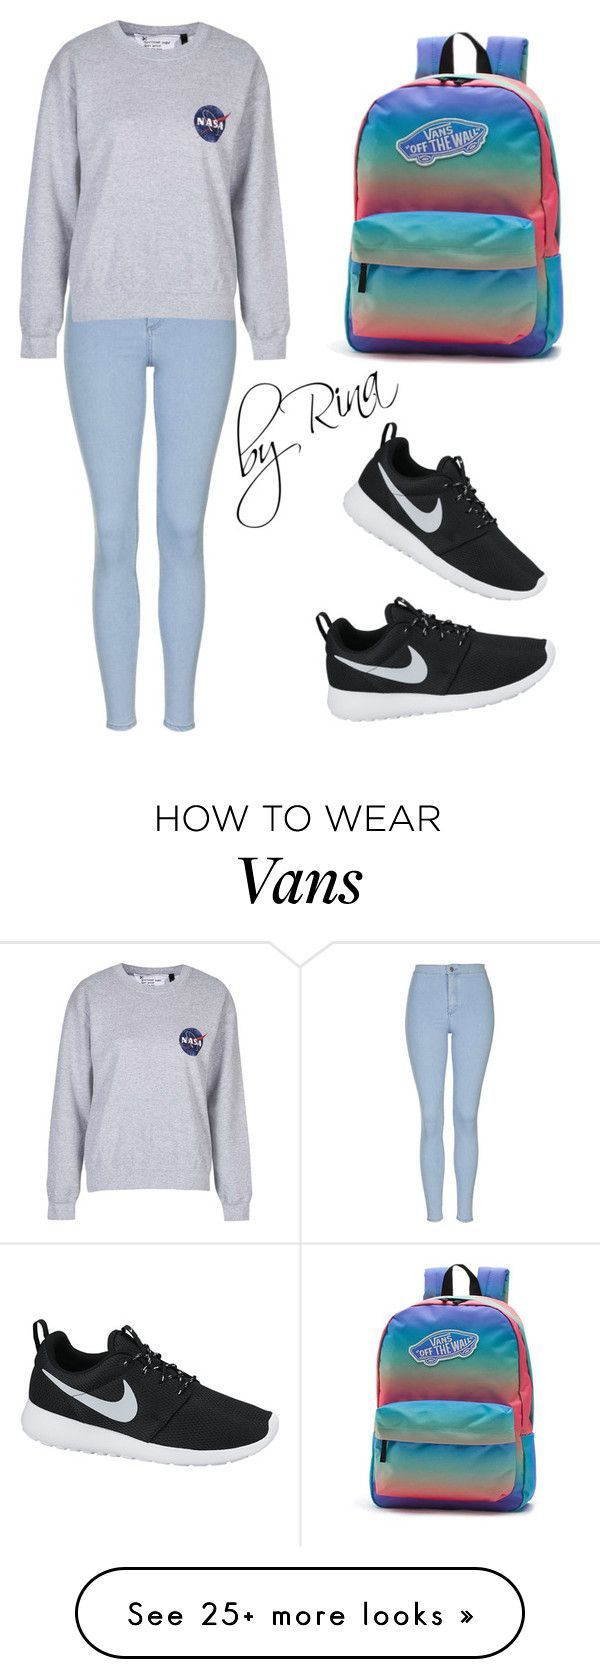 #19 by rinamoroz on Polyvore featuring Topshop, NIKE, Vans, womens clothing, women, female, woman, misses and juniors